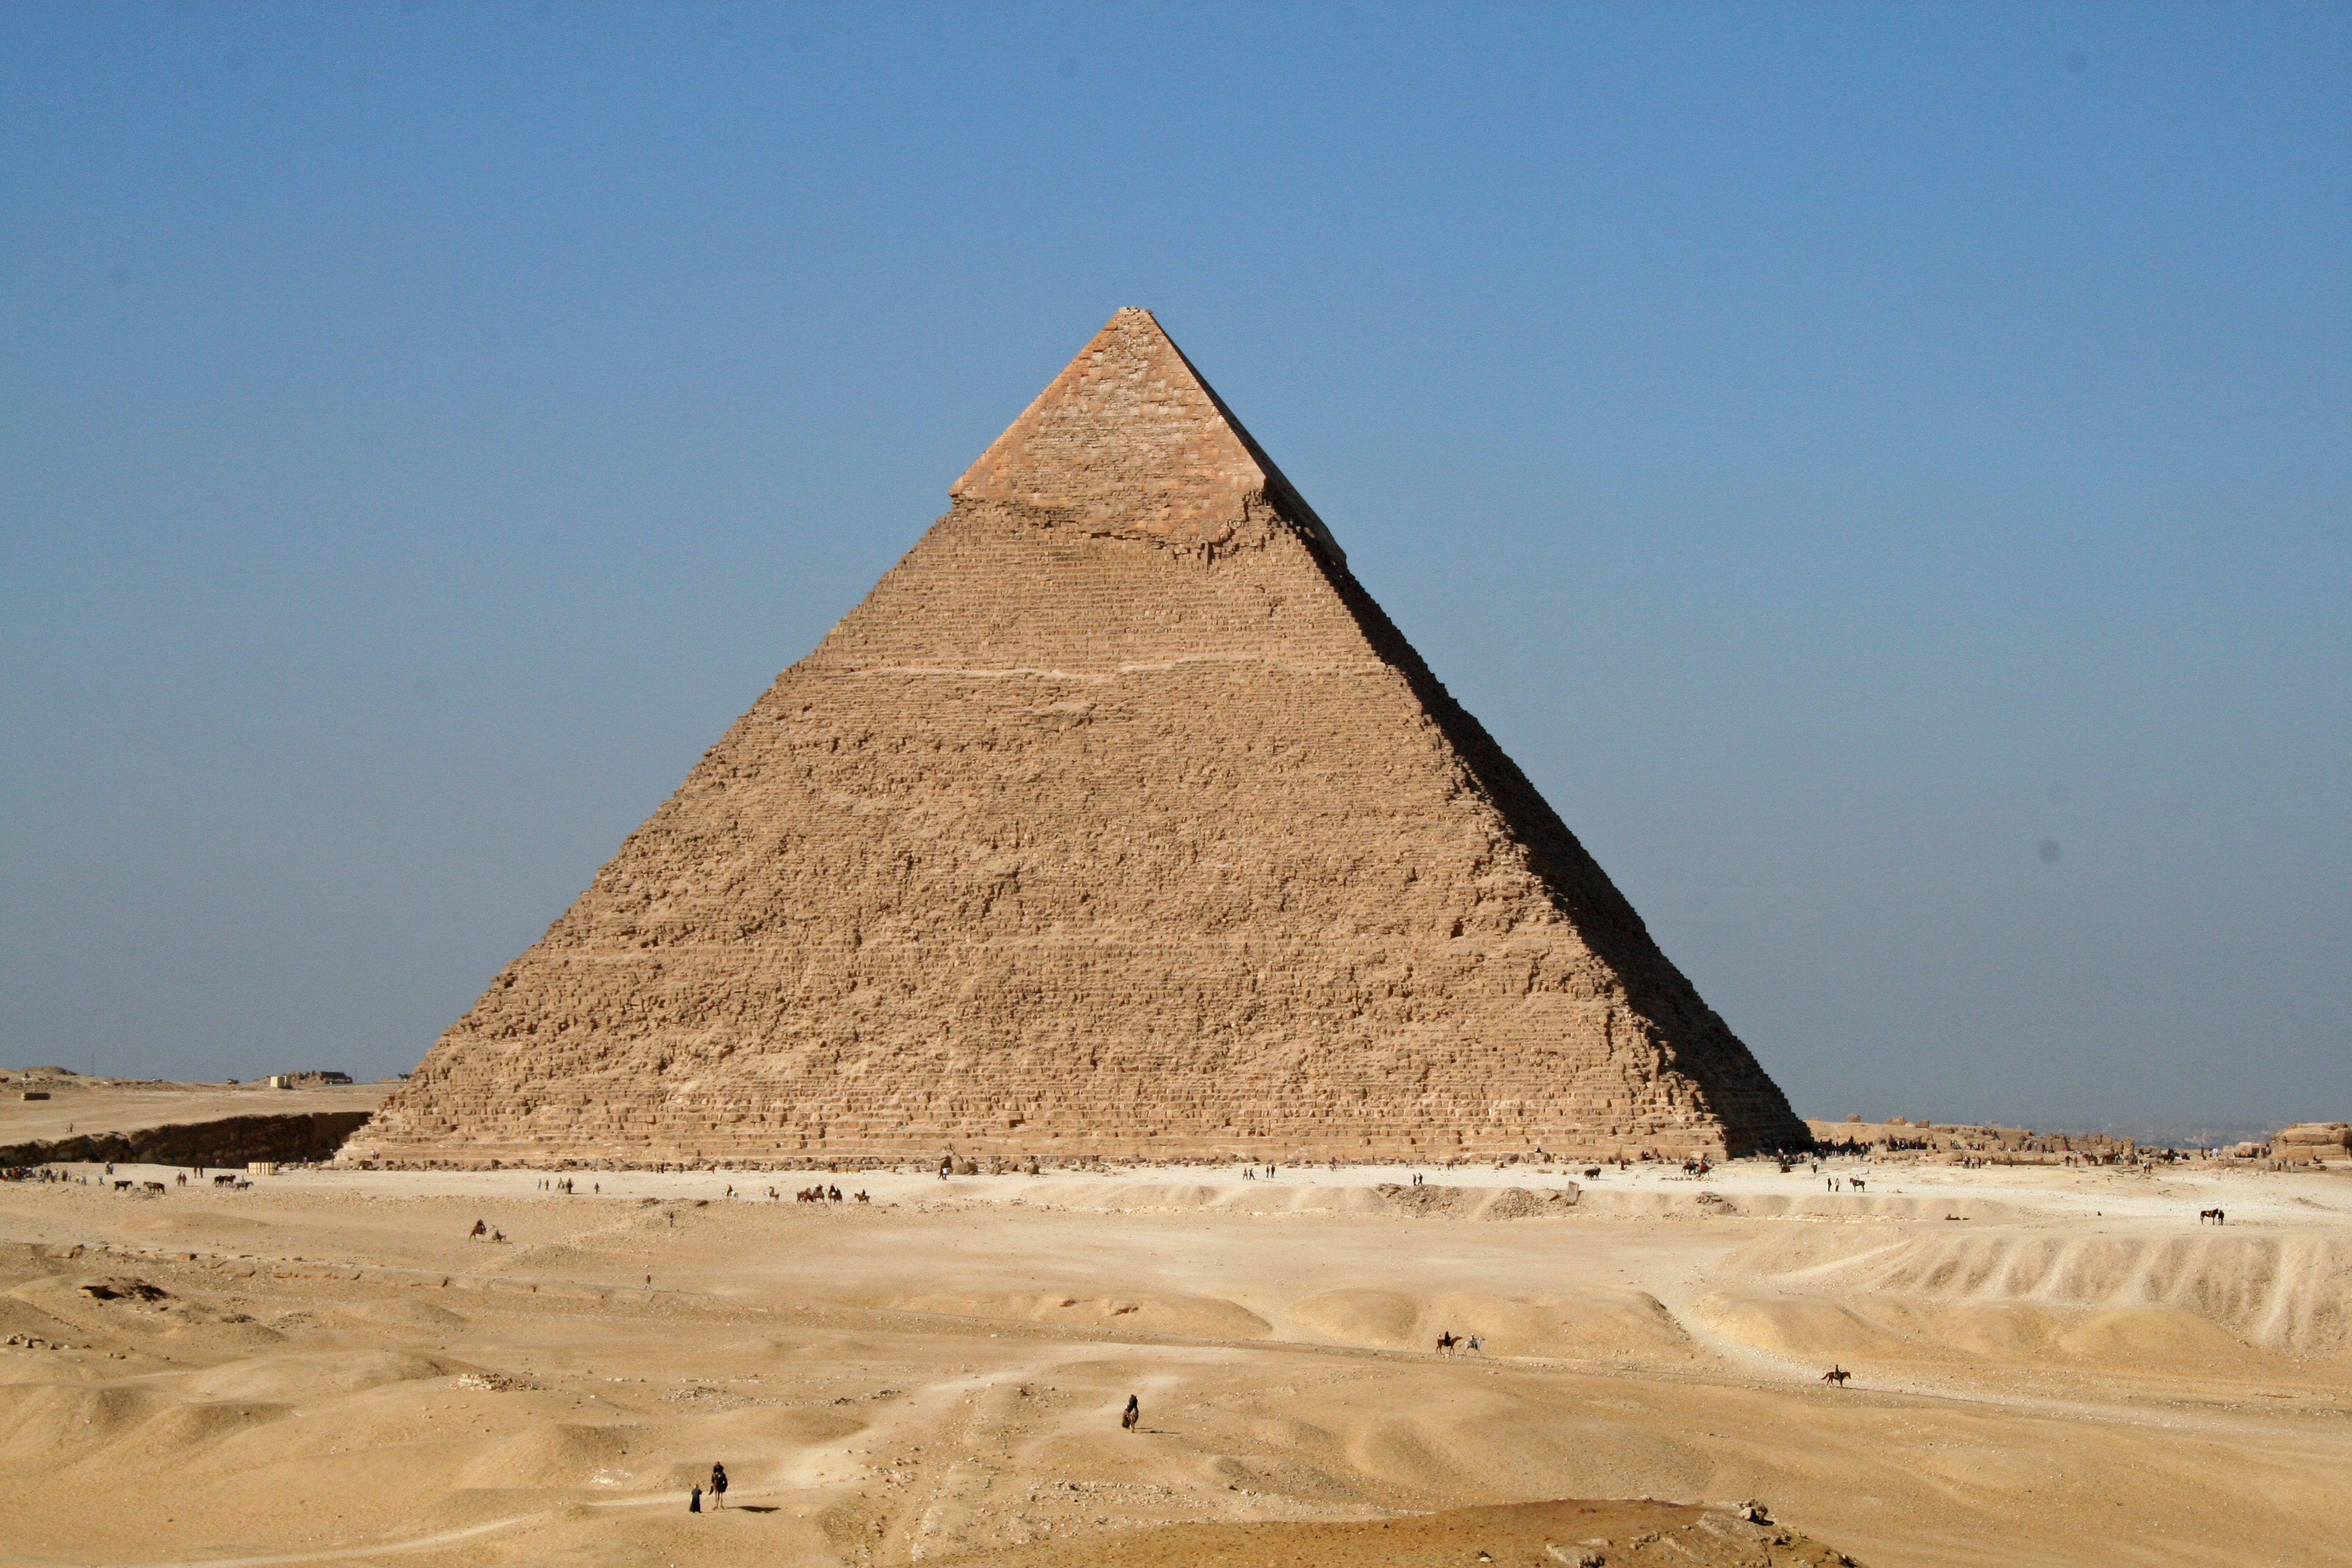 https://upload.wikimedia.org/wikipedia/commons/7/71/Pyramide_khephren.jpg